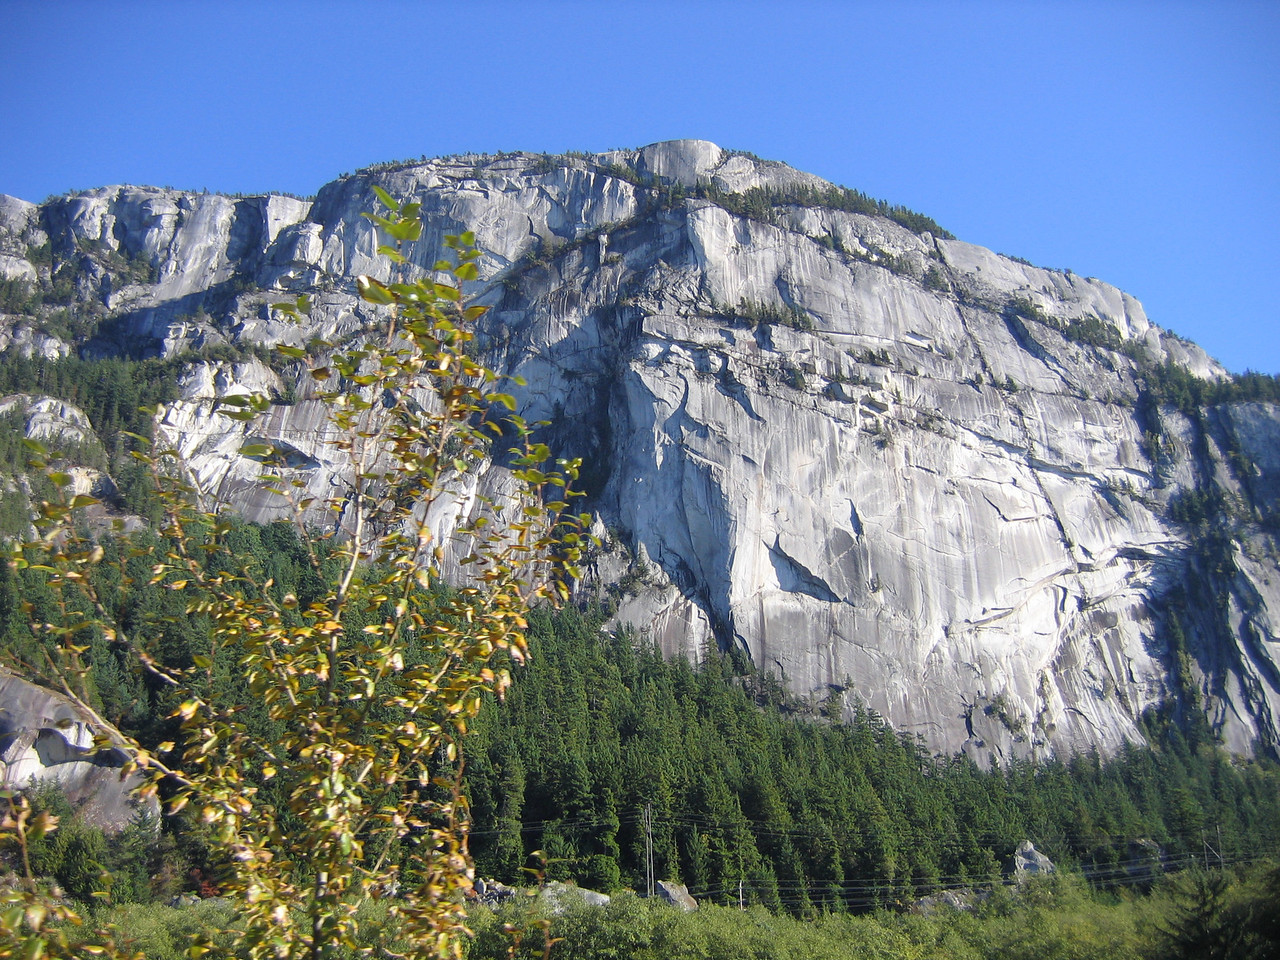 The Chief at Squamish. We saw a couple of folks climbing.